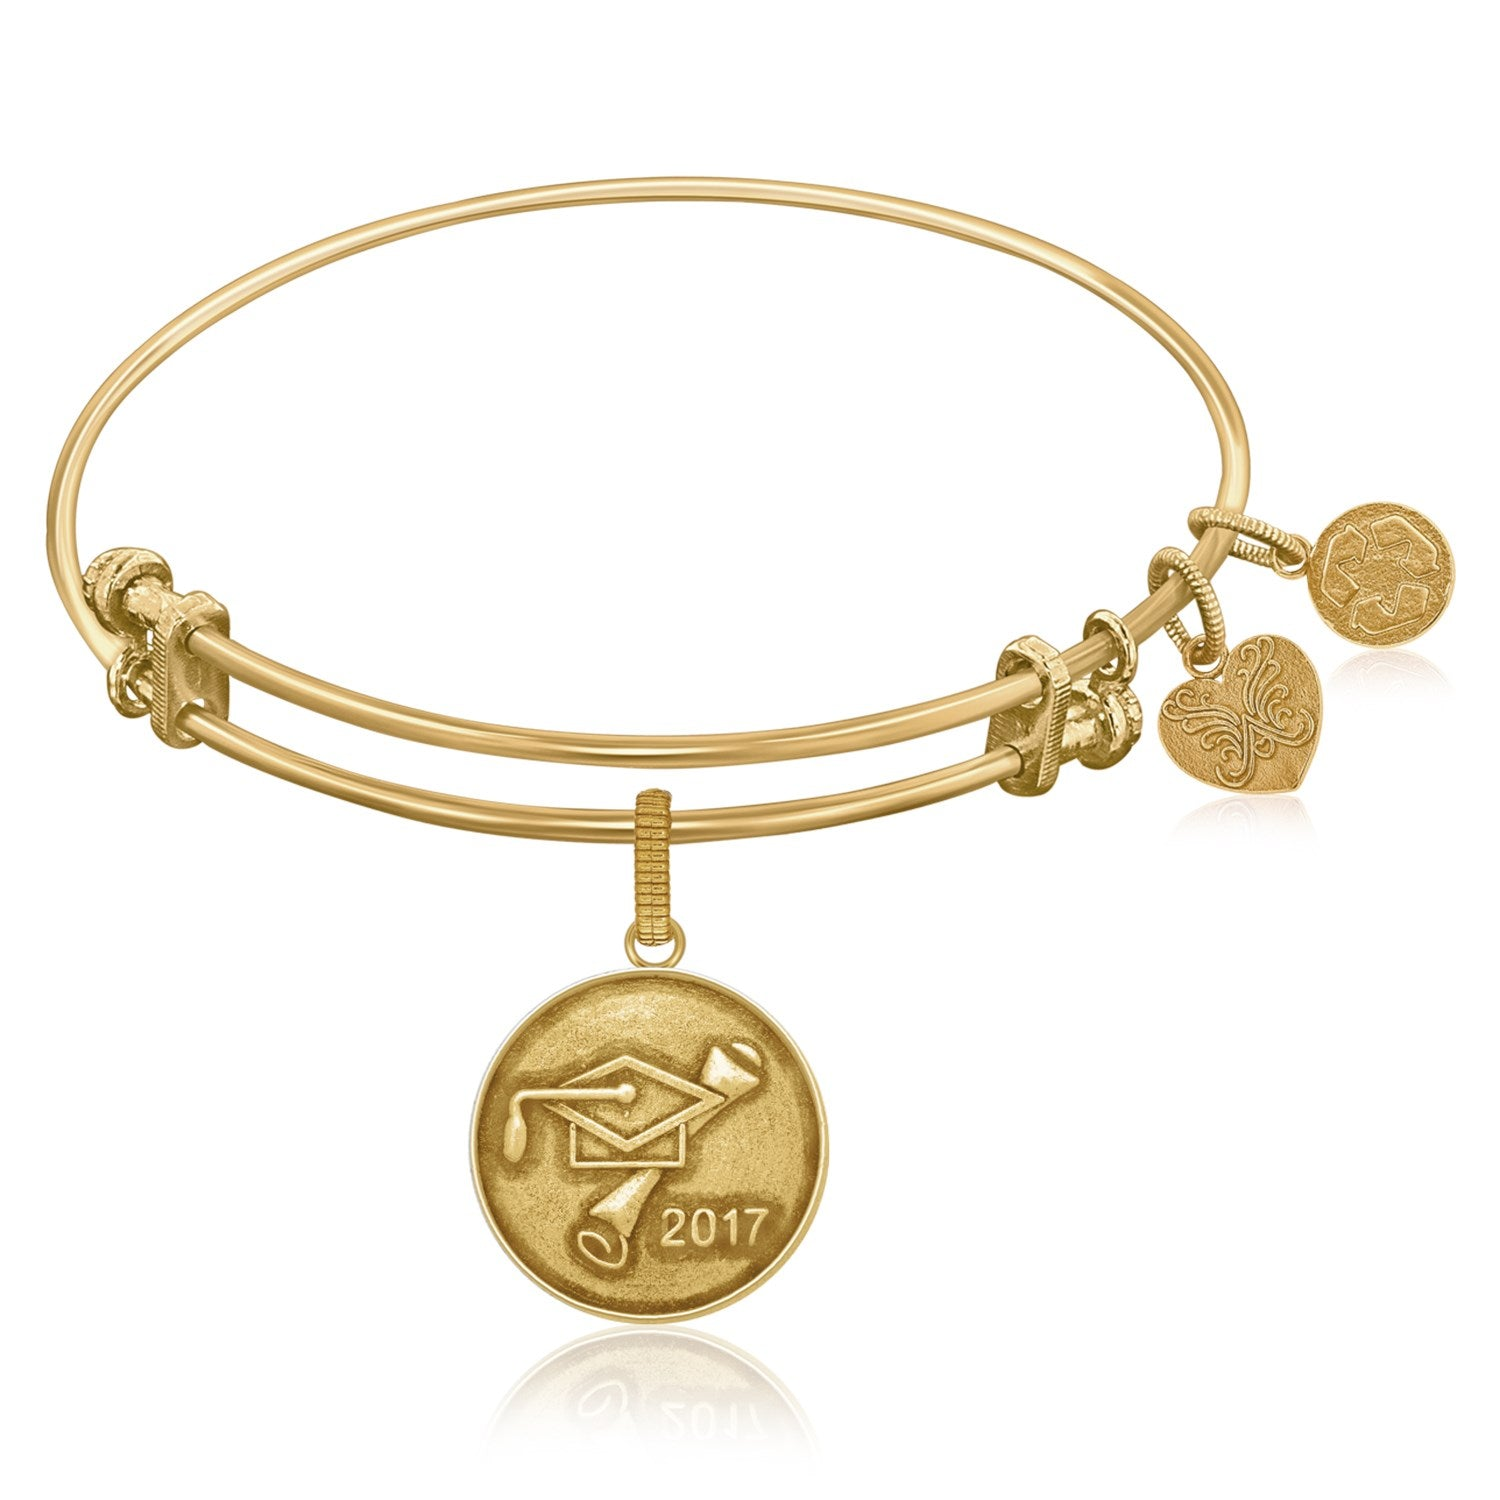 Expandable Bangle in Yellow Tone Brass with Class Of 2017 Graduation Cap Symbol